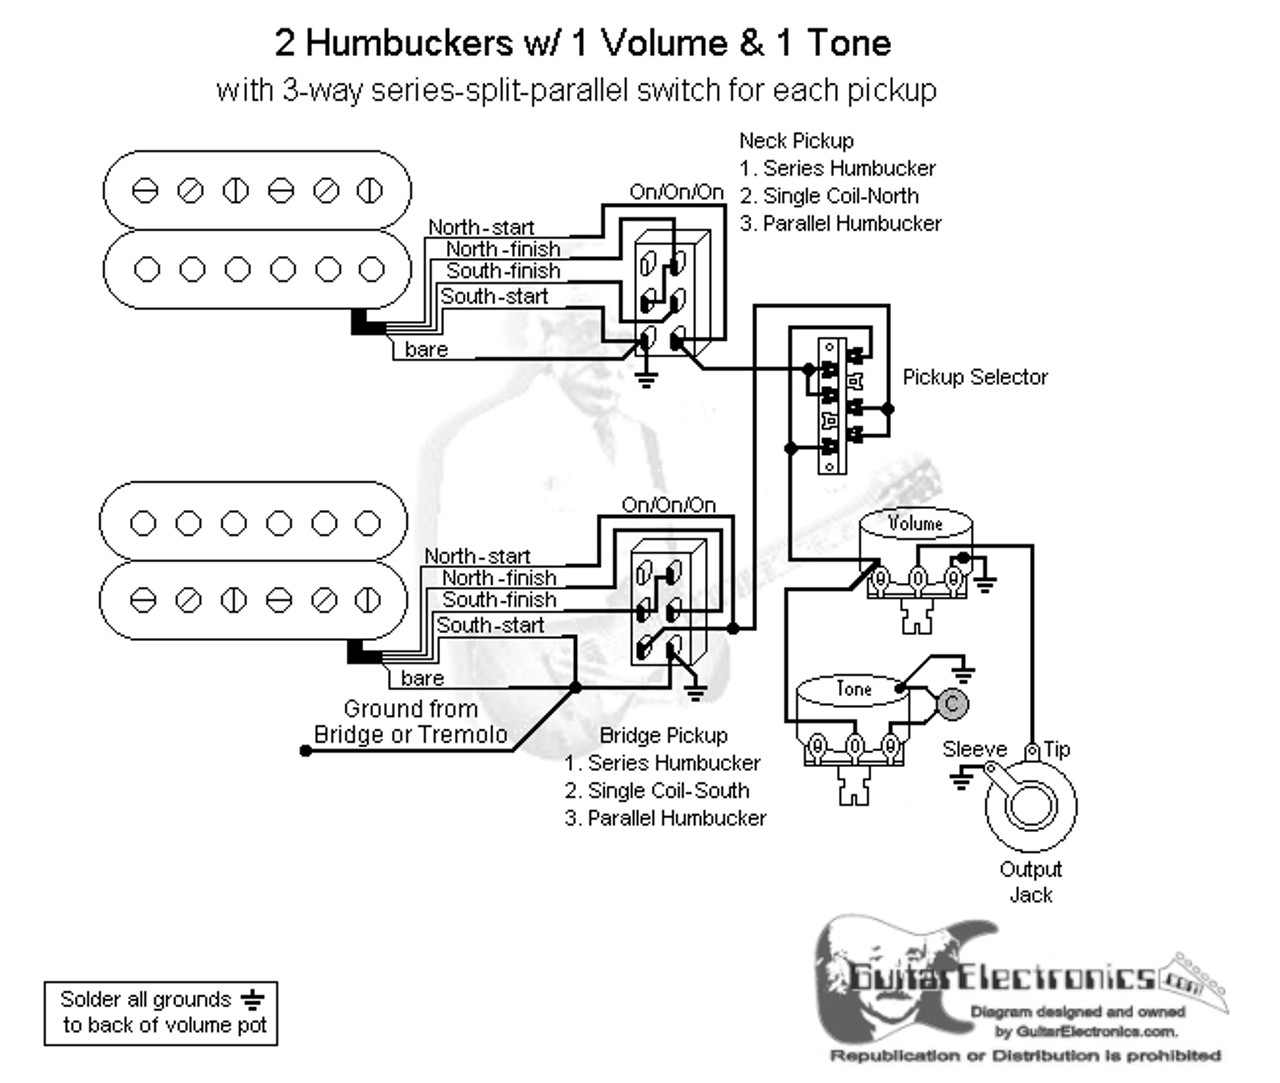 hight resolution of 2 humbuckers 3 way lever switch 1 volume 1 tone series split import strat wiring diagram